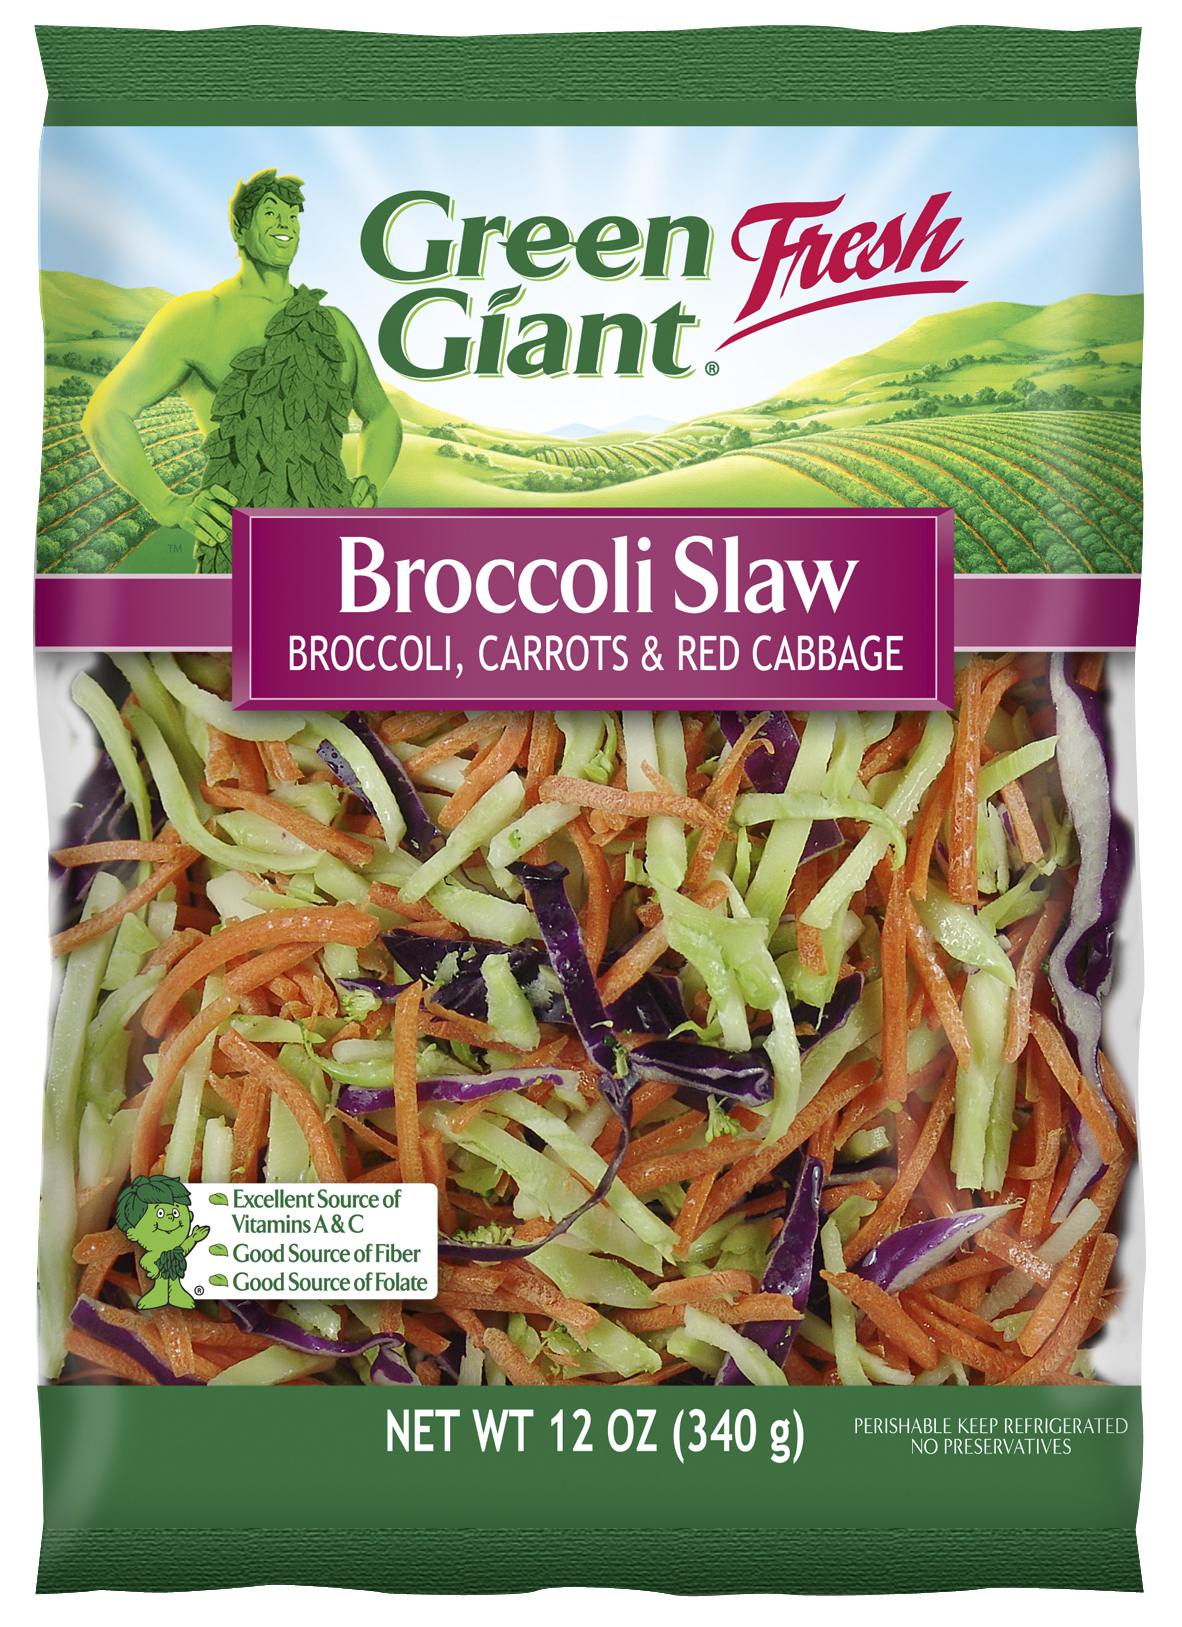 ... slaw of good old broccoli slaw apple broccoli slaw add broccoli slaw